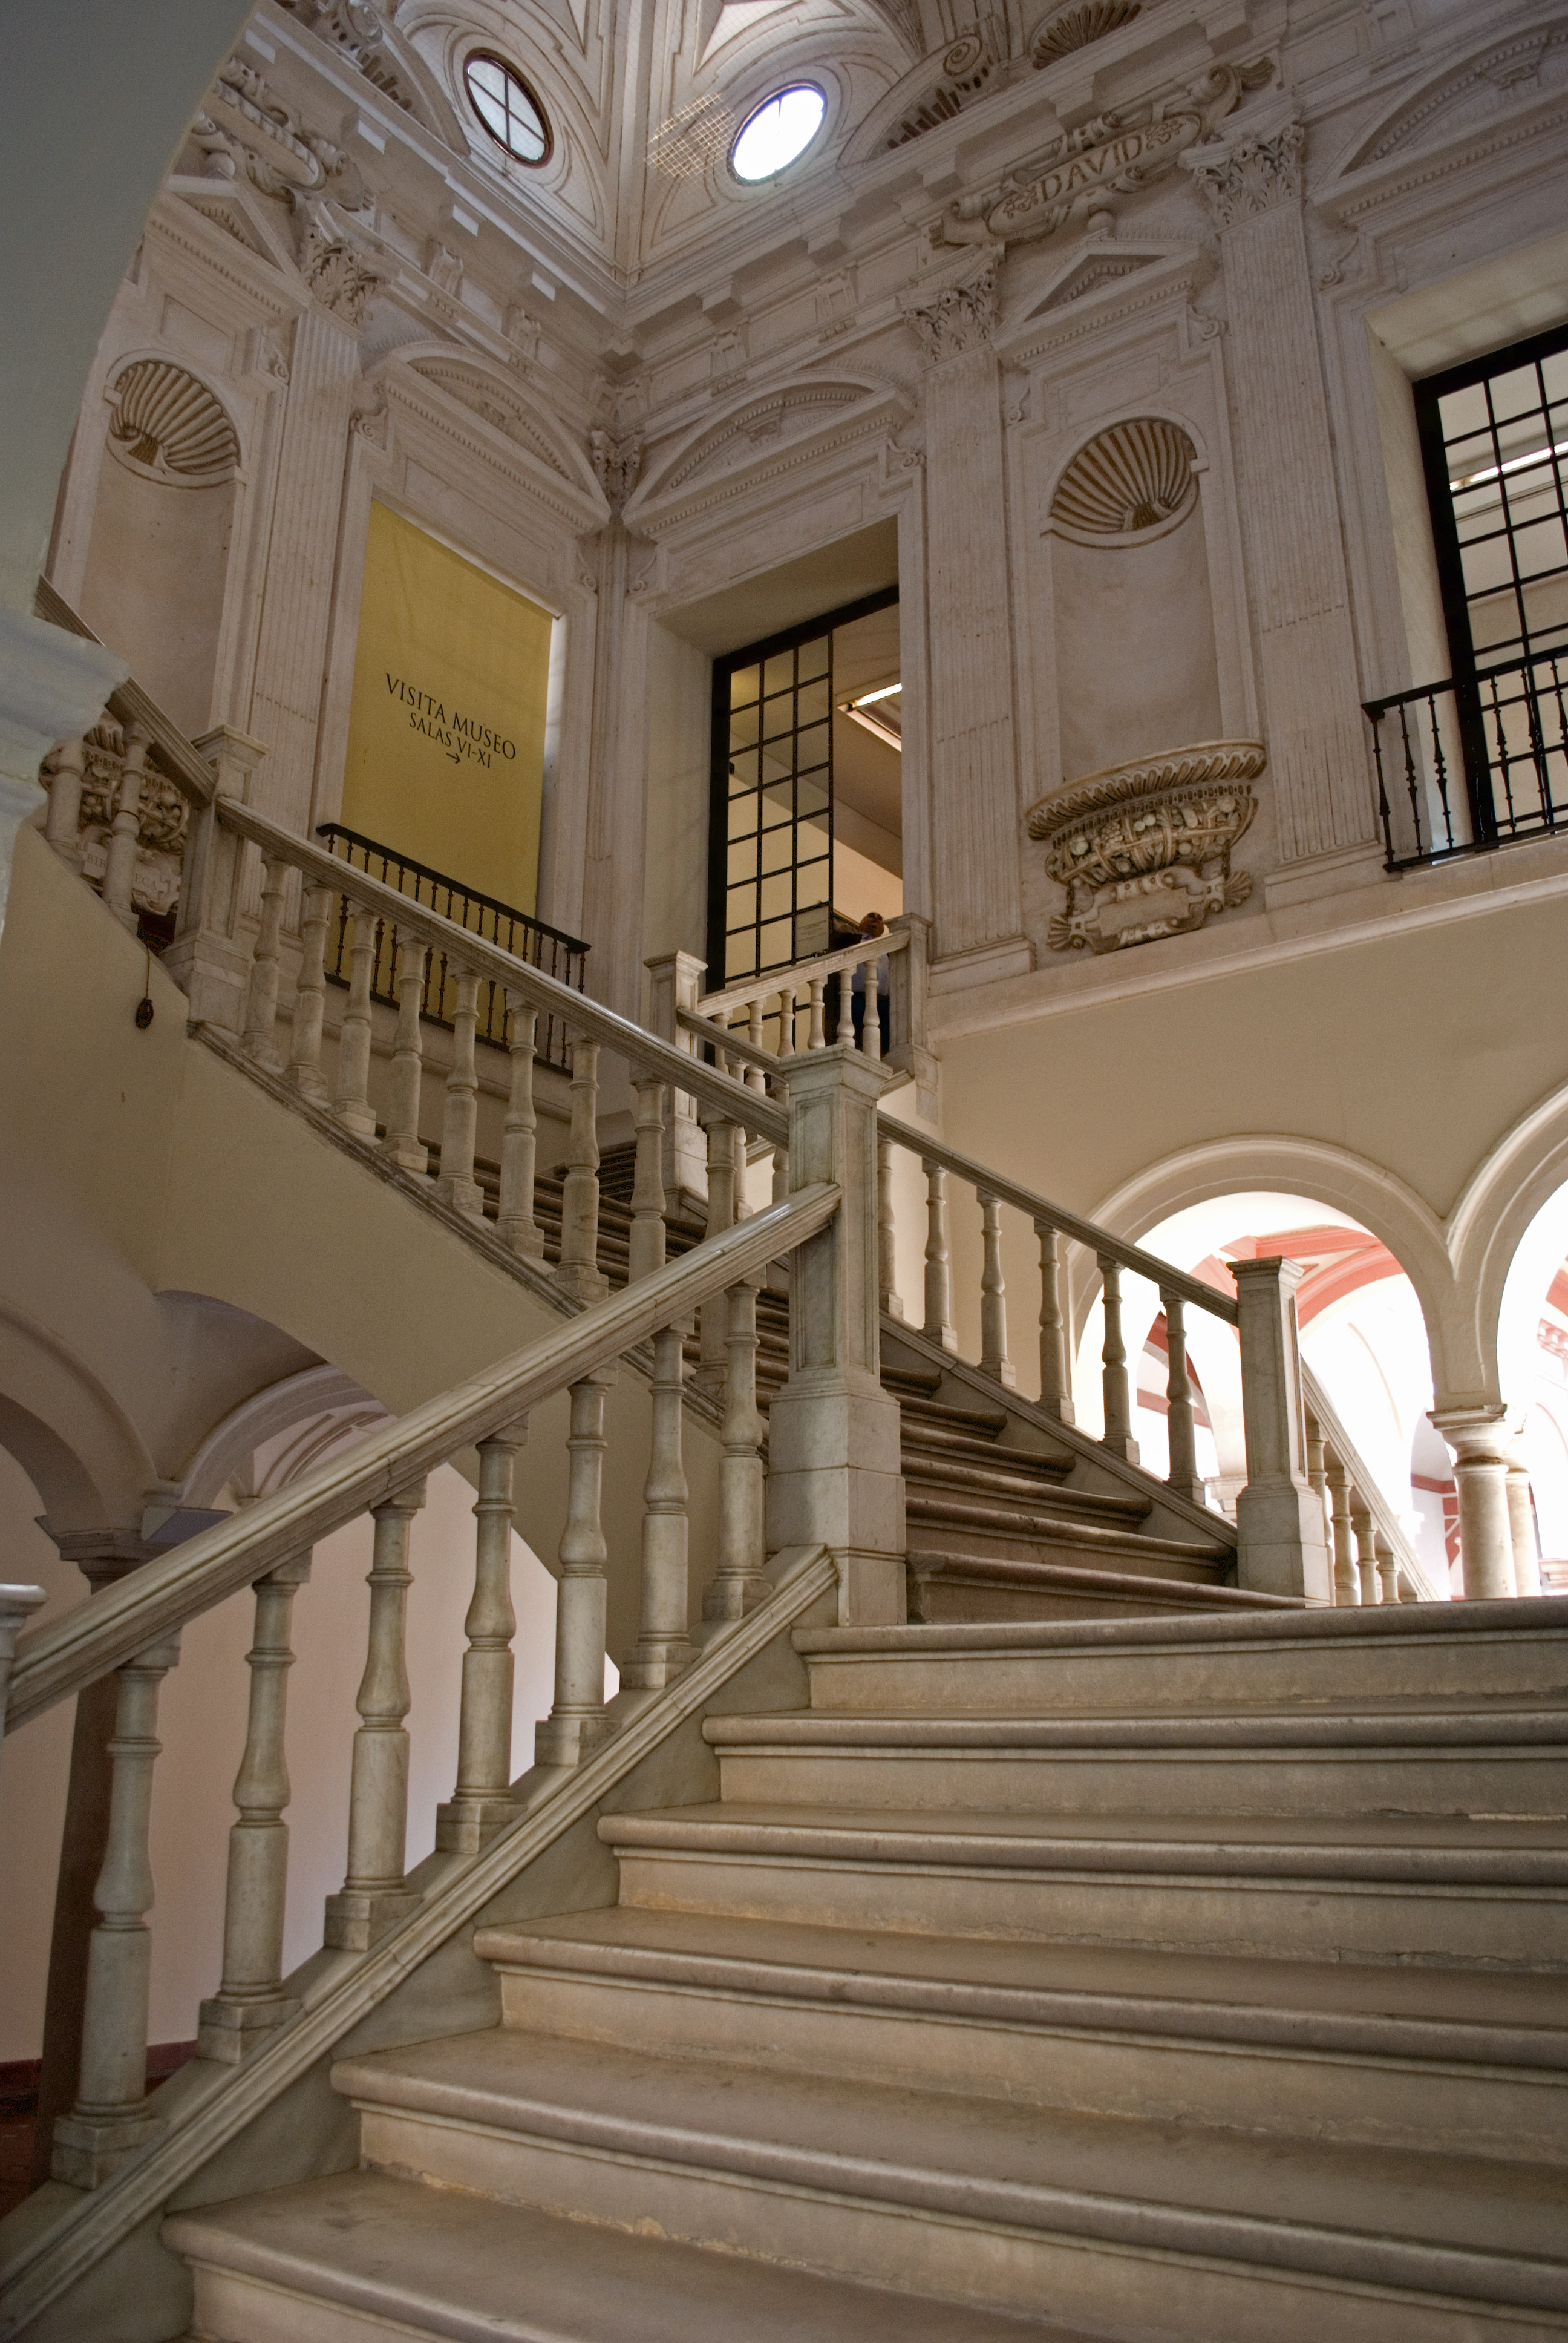 File:Escalera museo bellas artes.jpg - Wikimedia Commons